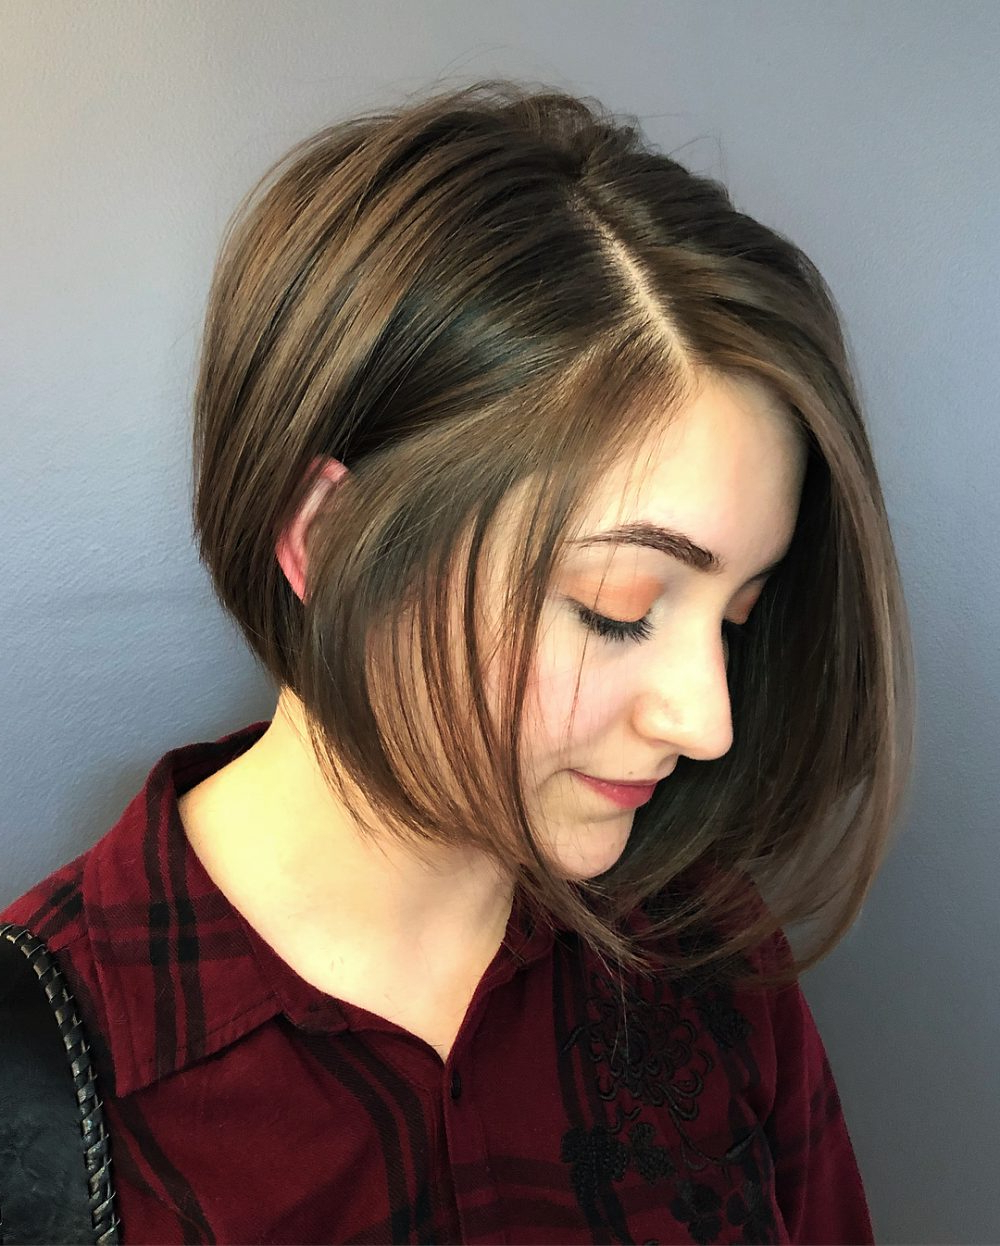 33 Flattering Short Hairstyles For Round Faces In 2018 In Short Hairstyles For Round Faces With Double Chin (View 20 of 25)